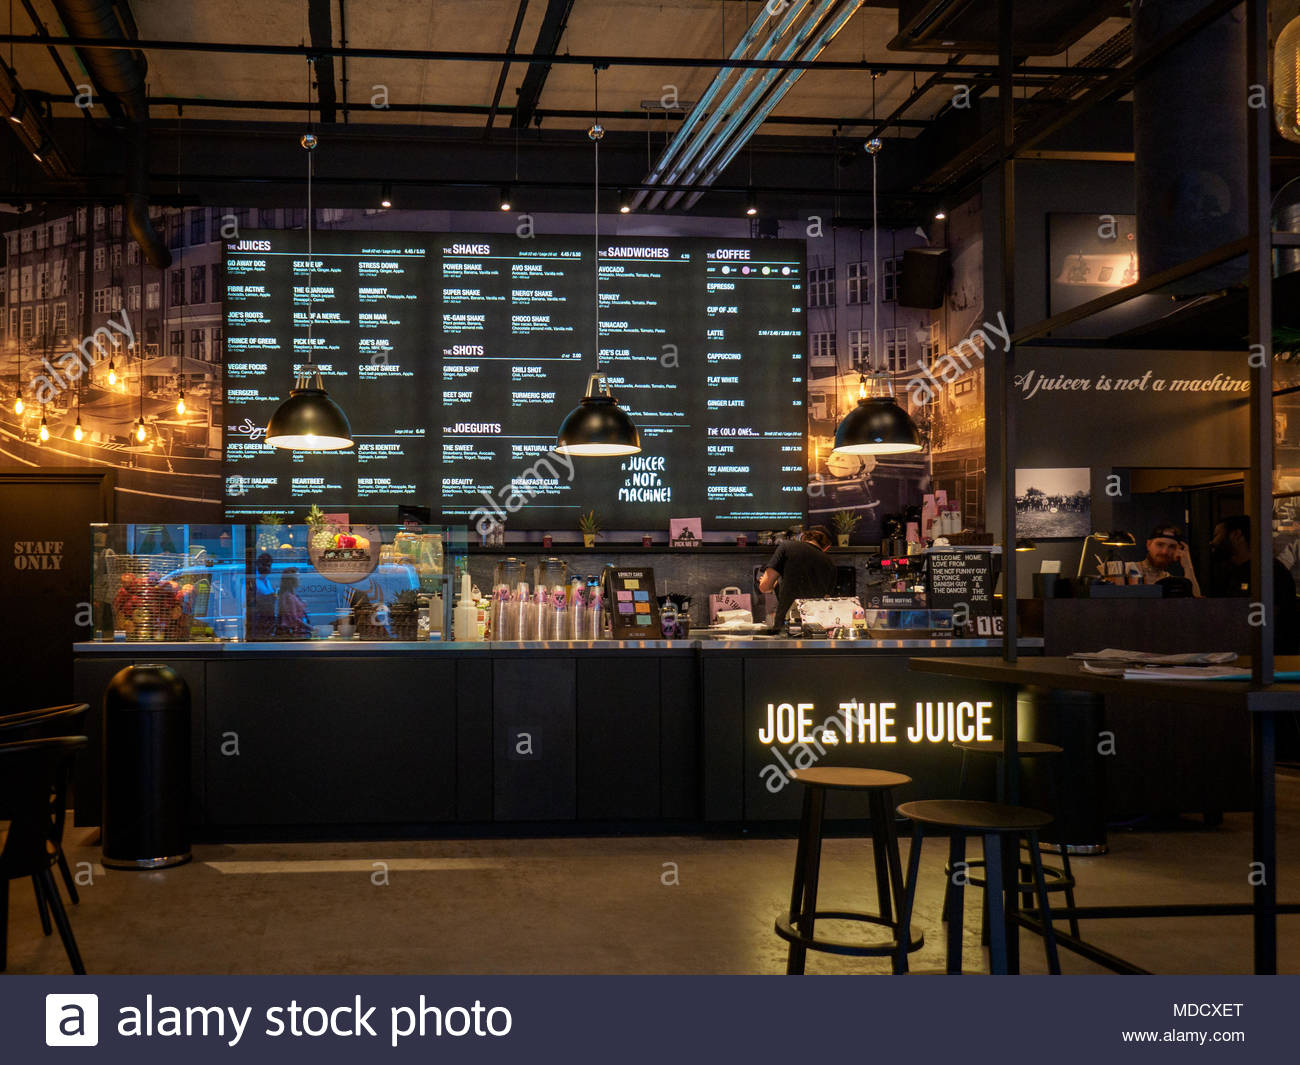 Joe and the Juice coffee & juice bar - interior of a Joe and the Juice coffee bar in London UK. The Danish based company is undergoing rapid expansion. - Stock Image